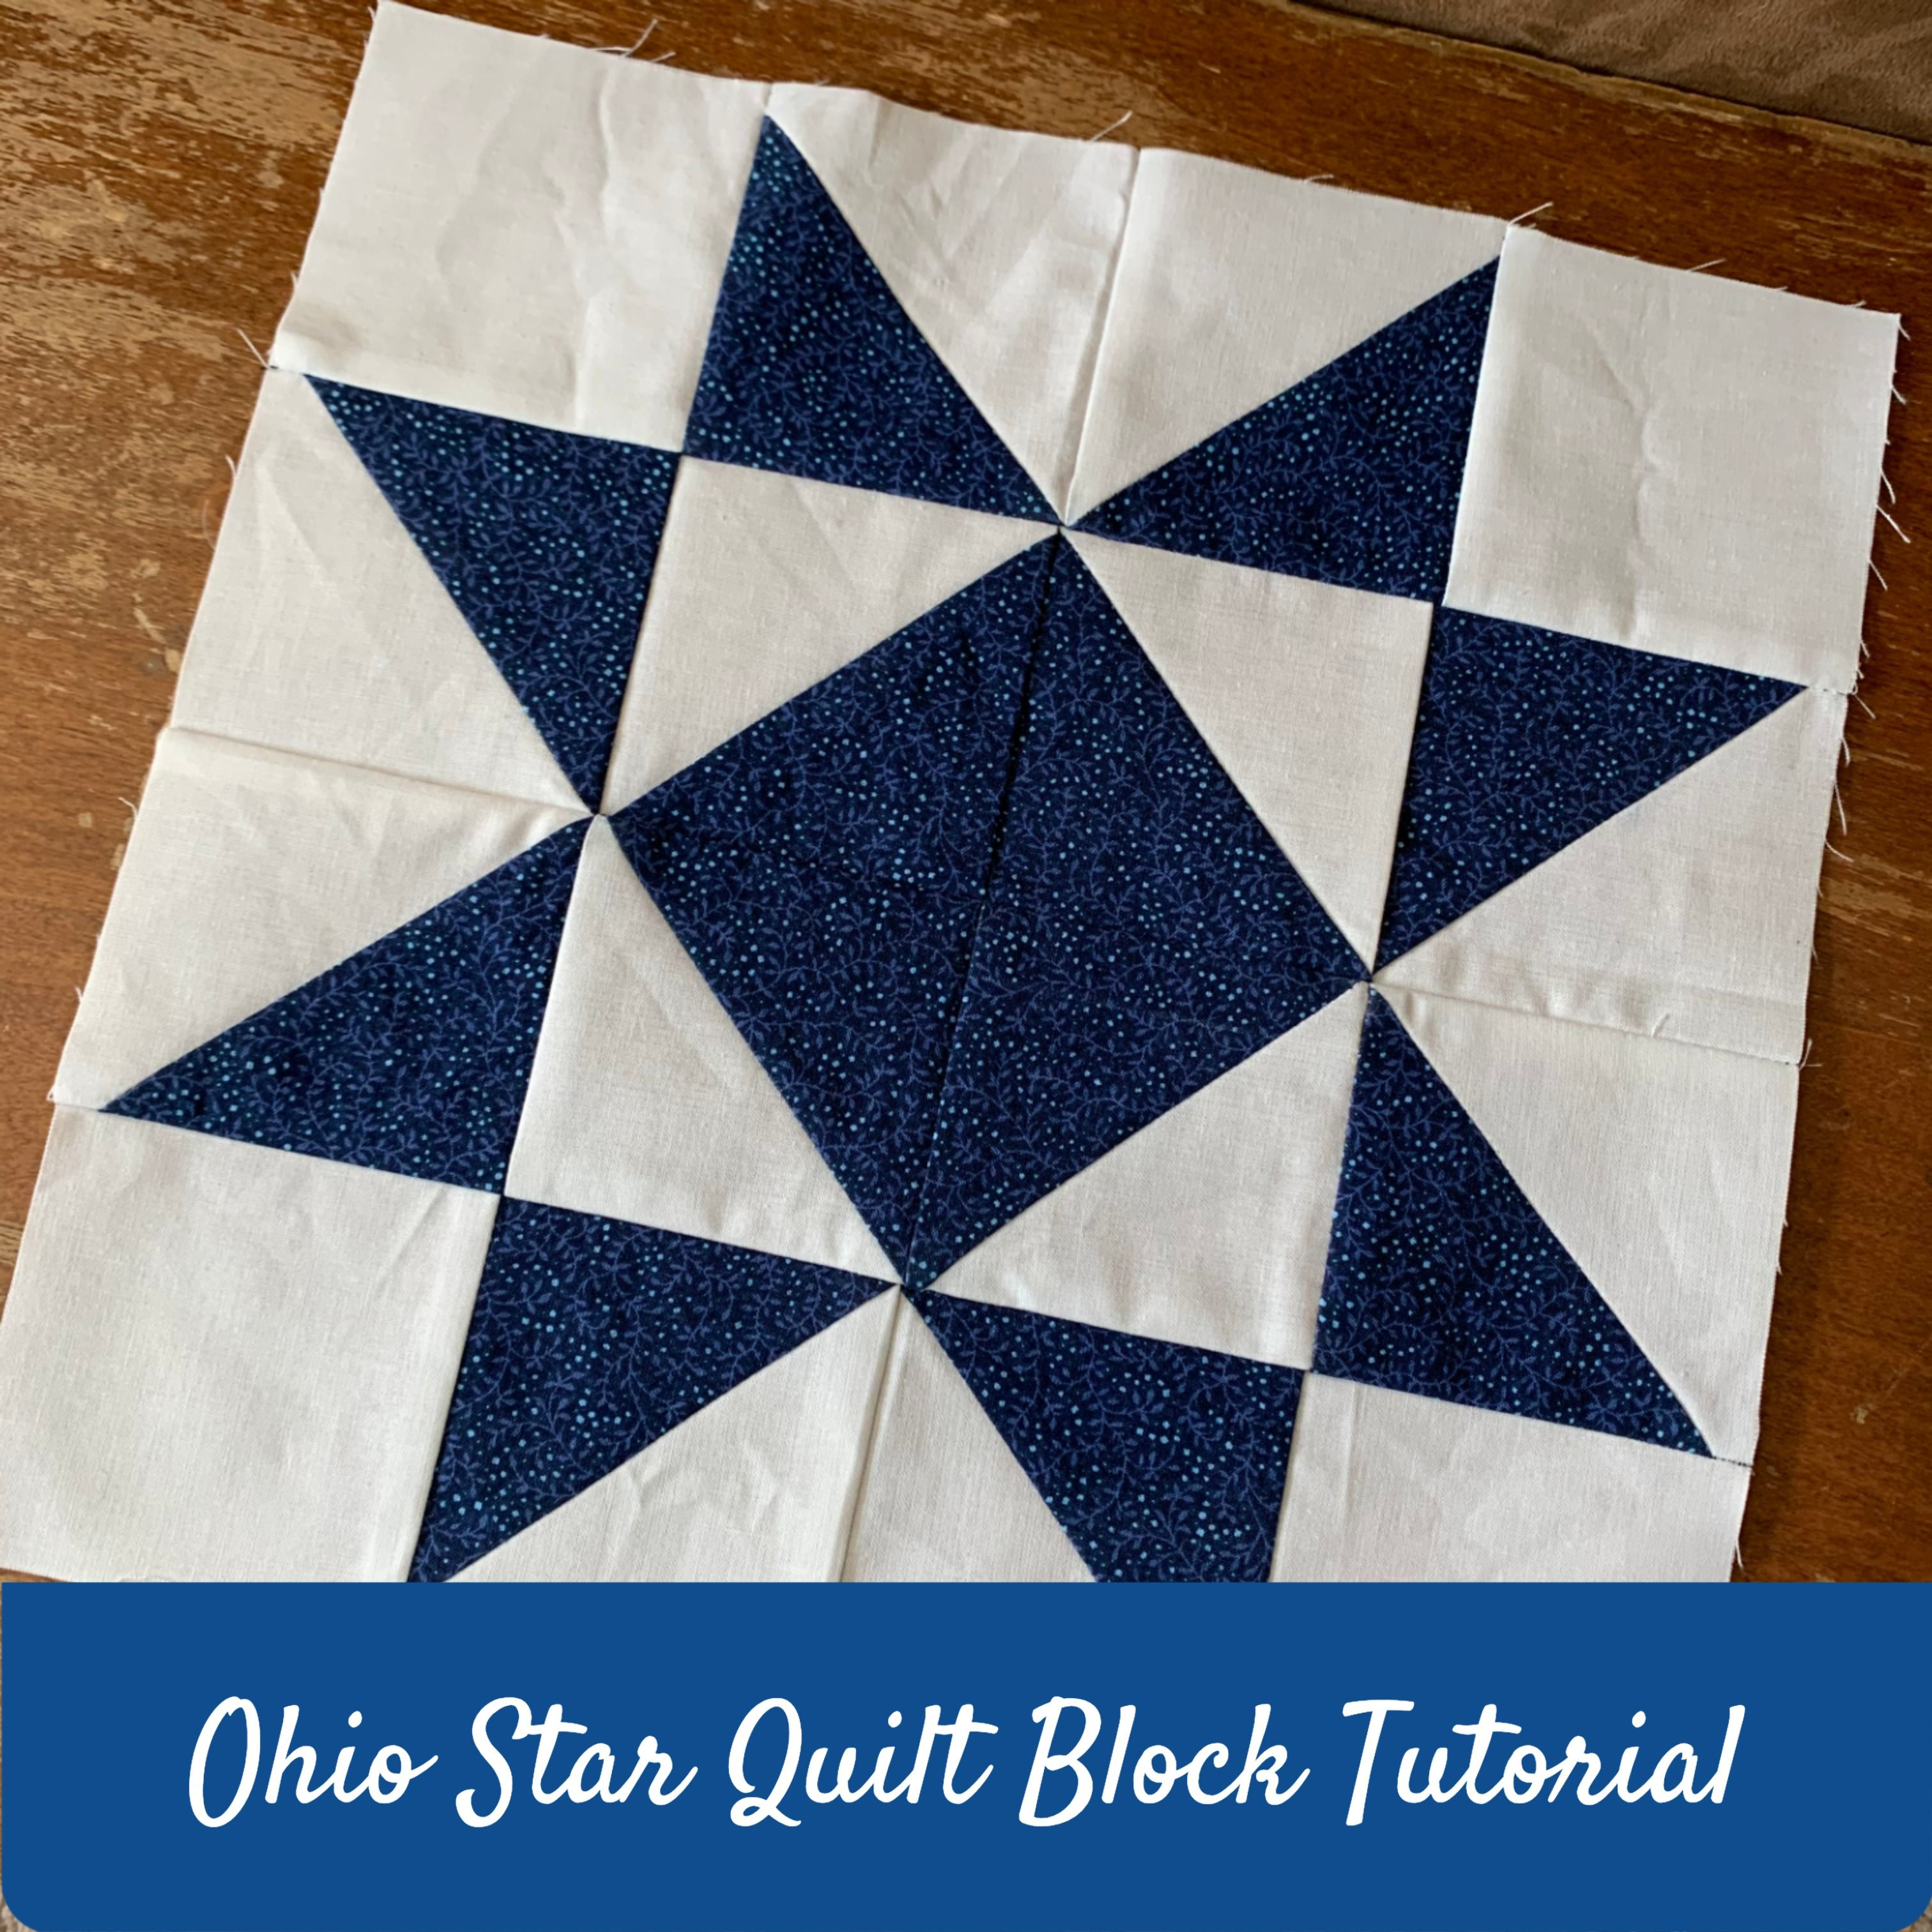 How To Make The Ohio Star Quilt Block Technique Tuesday Quilt Blocks Quilt Block Tutorial Quilts